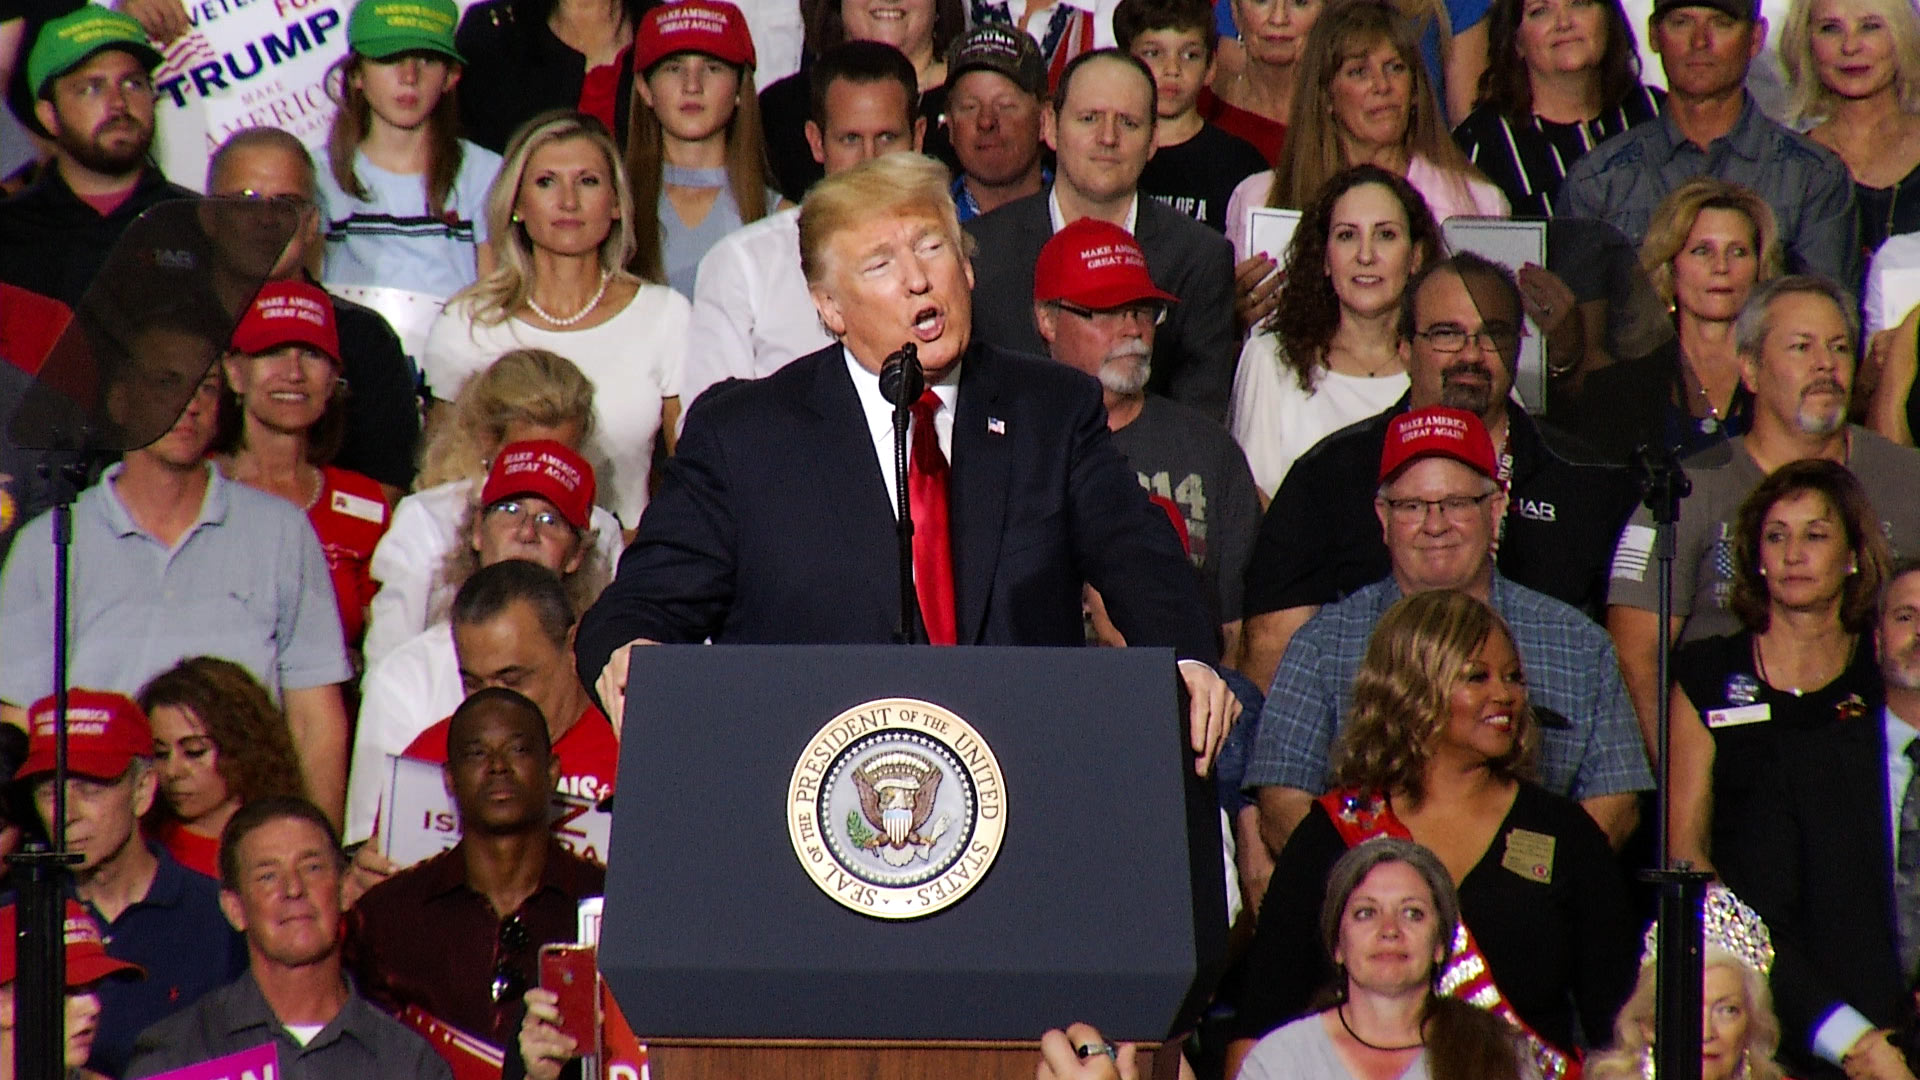 President Donald Trump at a rally in Mesa, Arizona, Oct. 19, 2018.